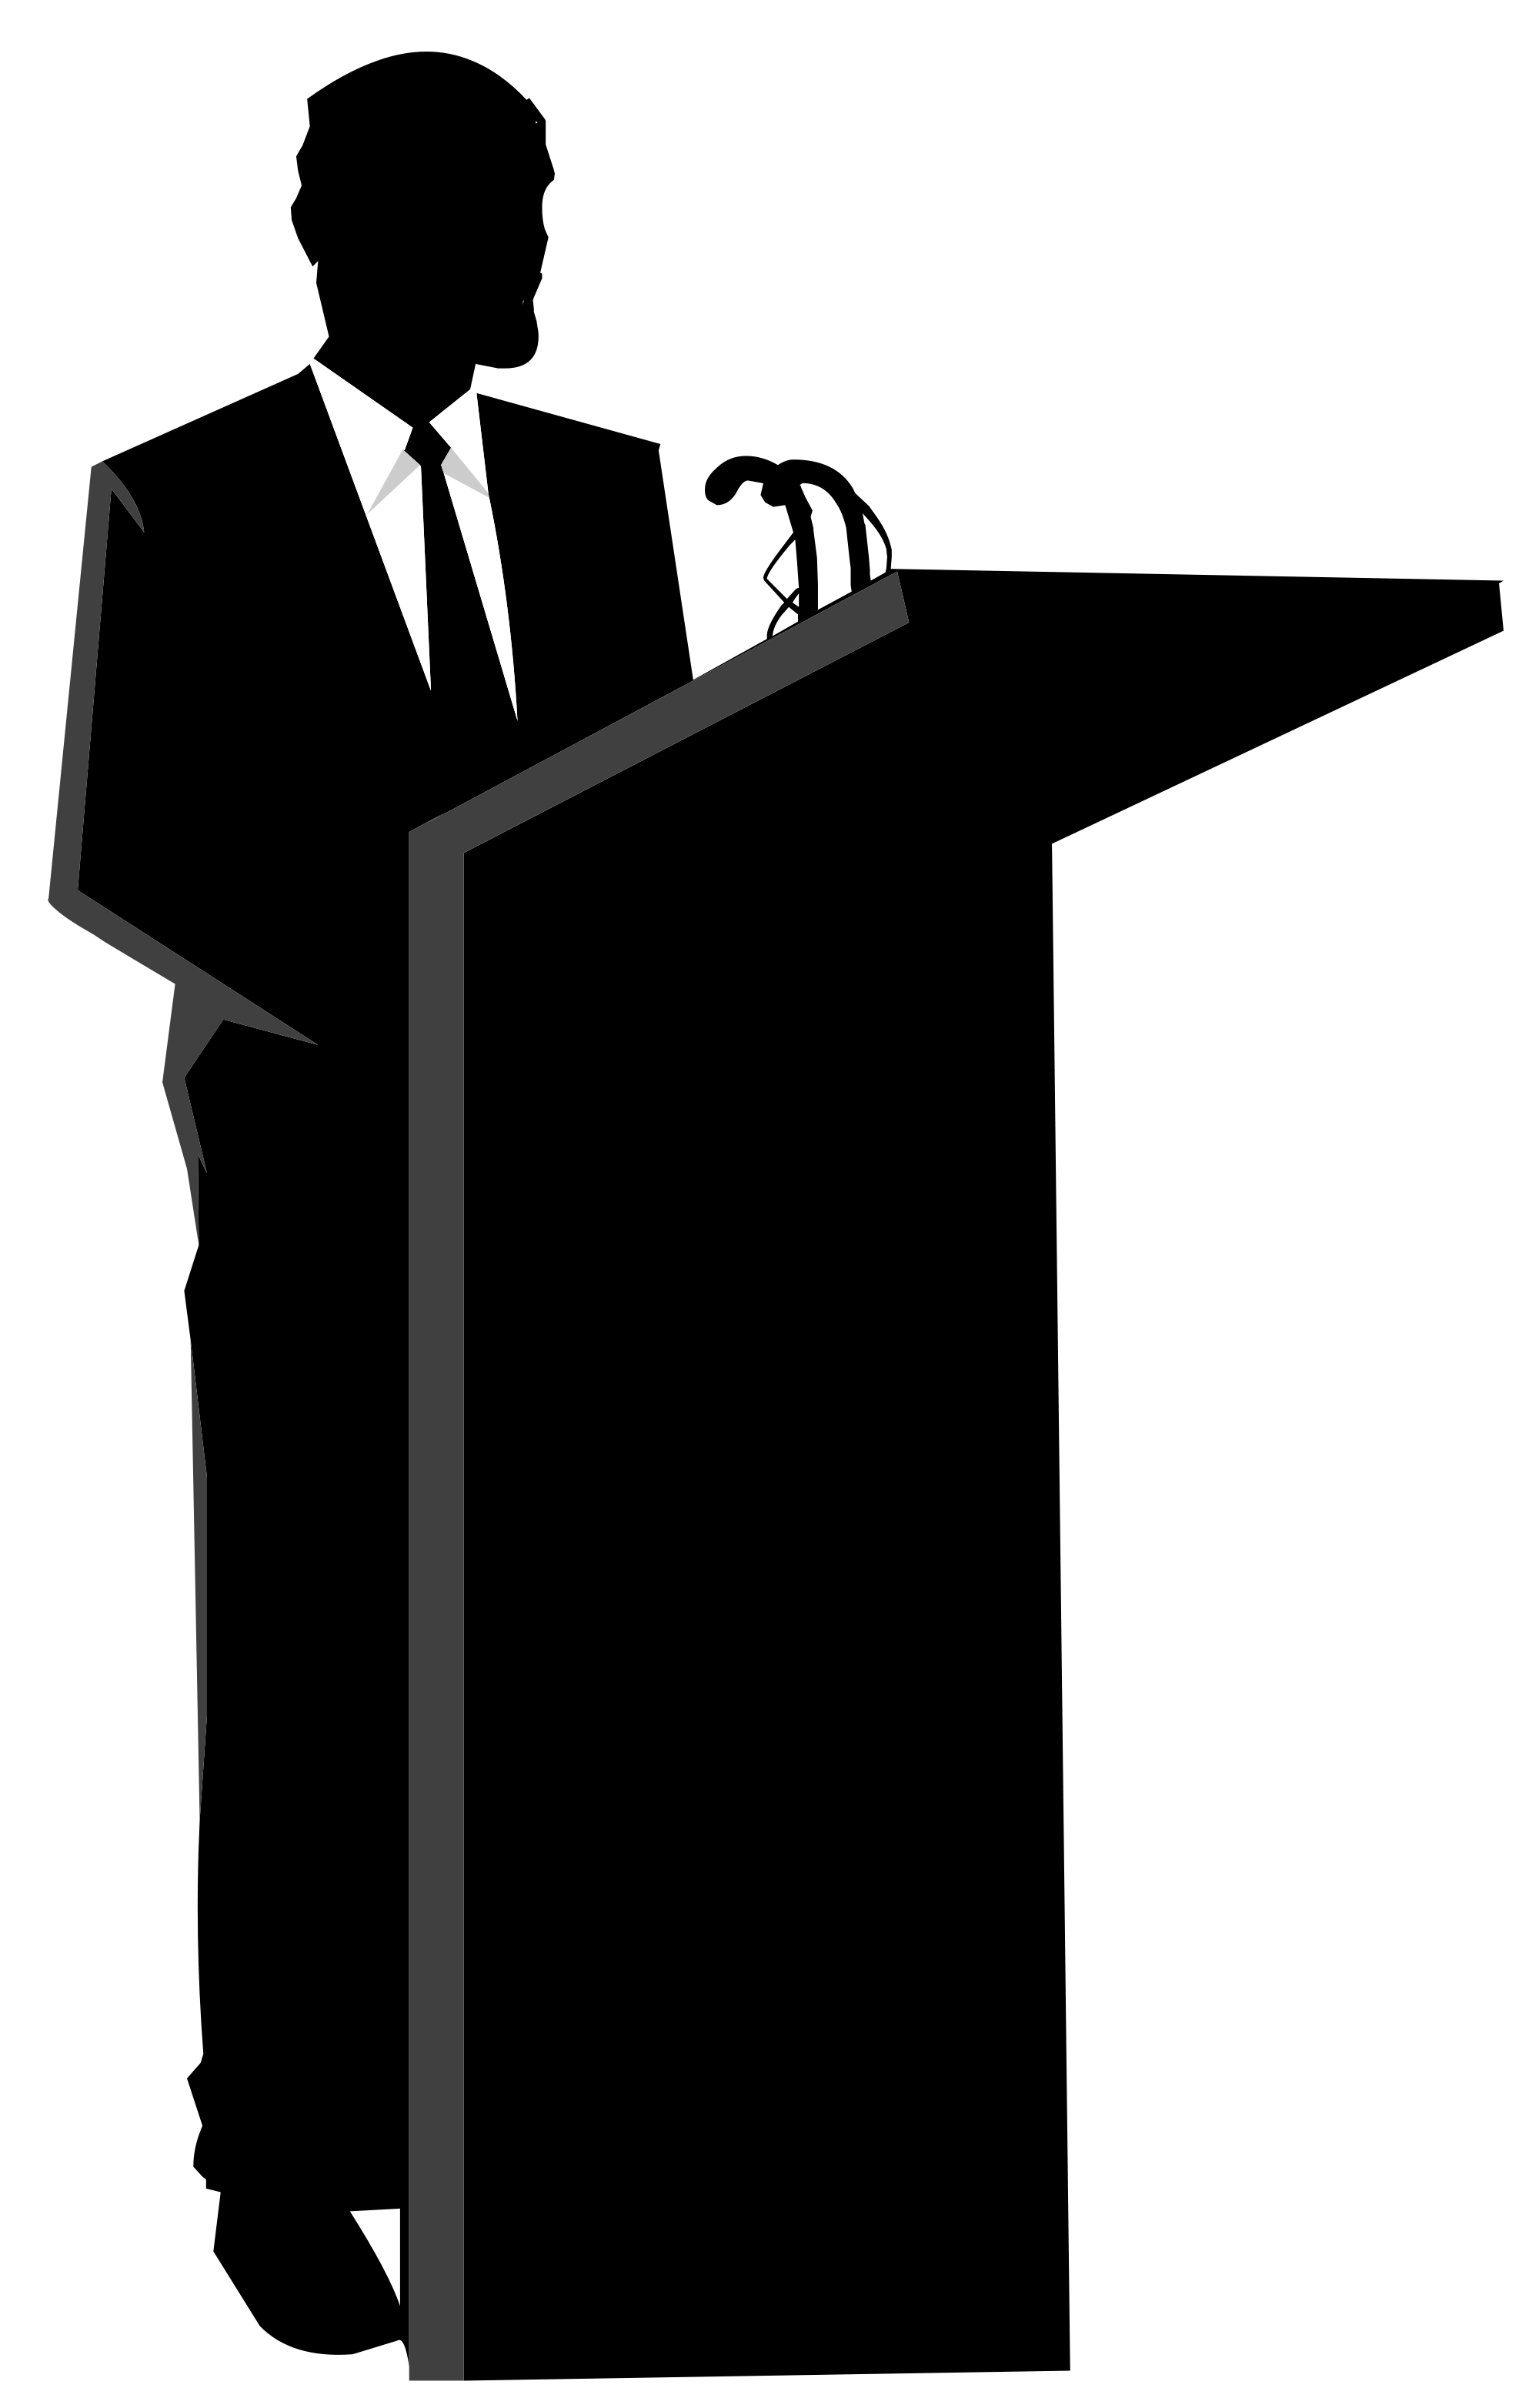 Silhouette speech podium clipart.